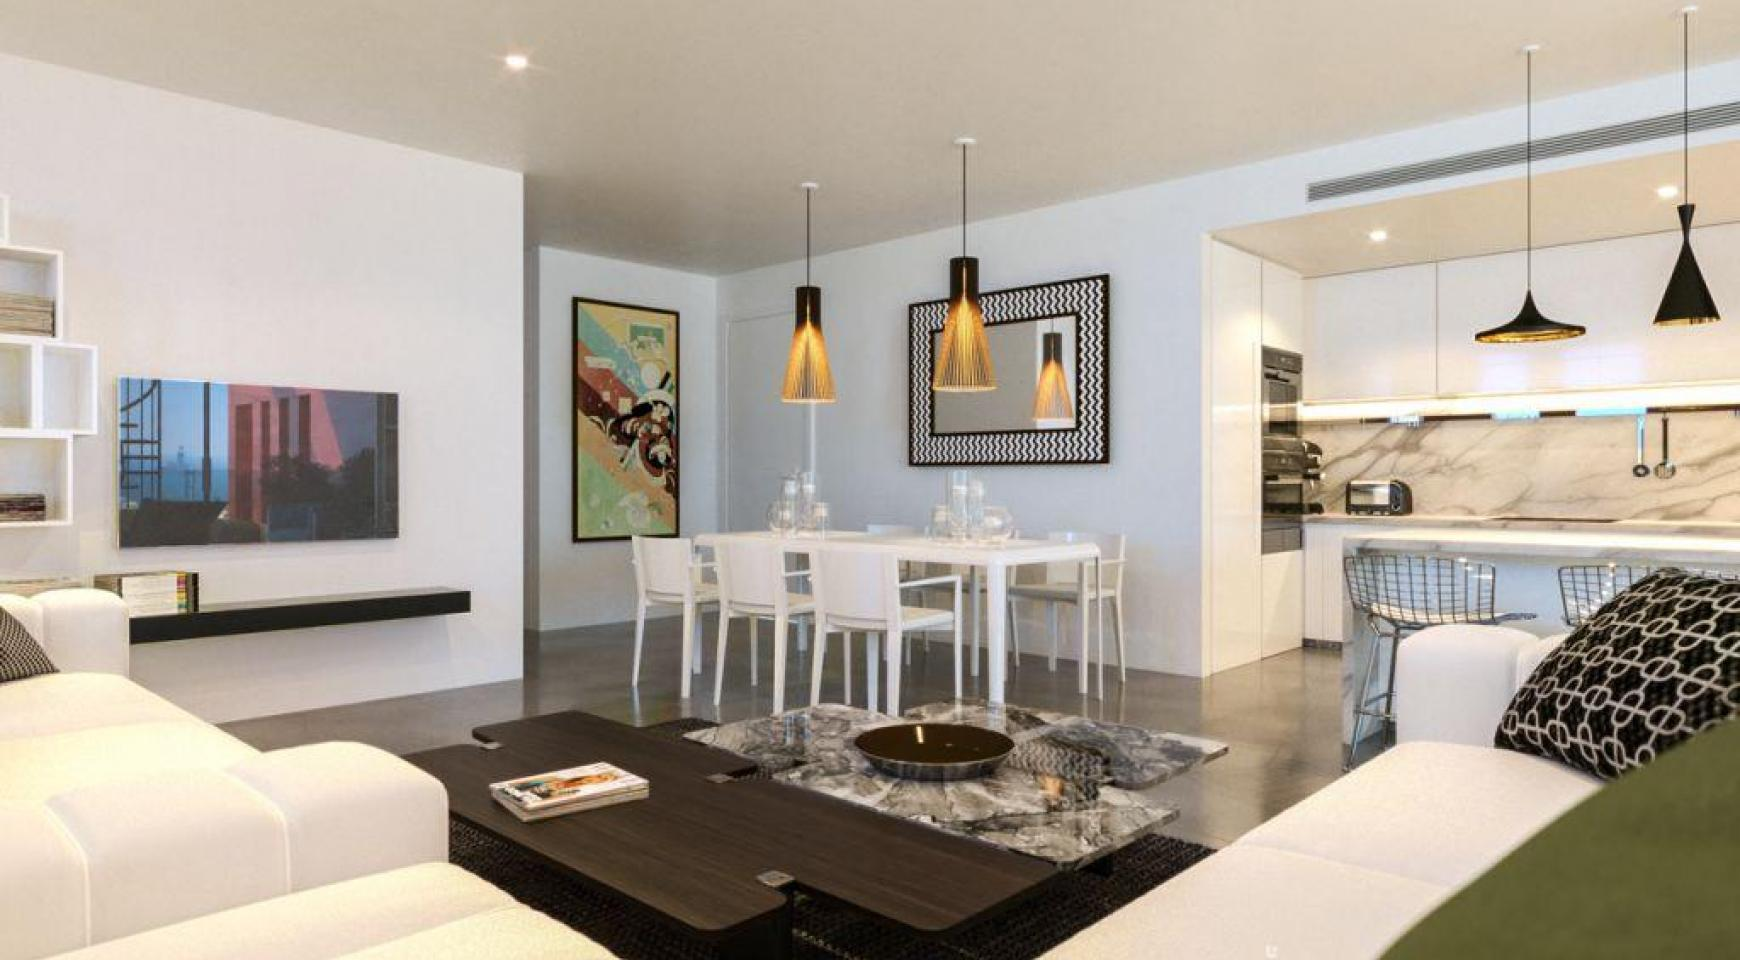 Contemporary 2 Bedroom Apartment in a New Project in Columbia Area - 2